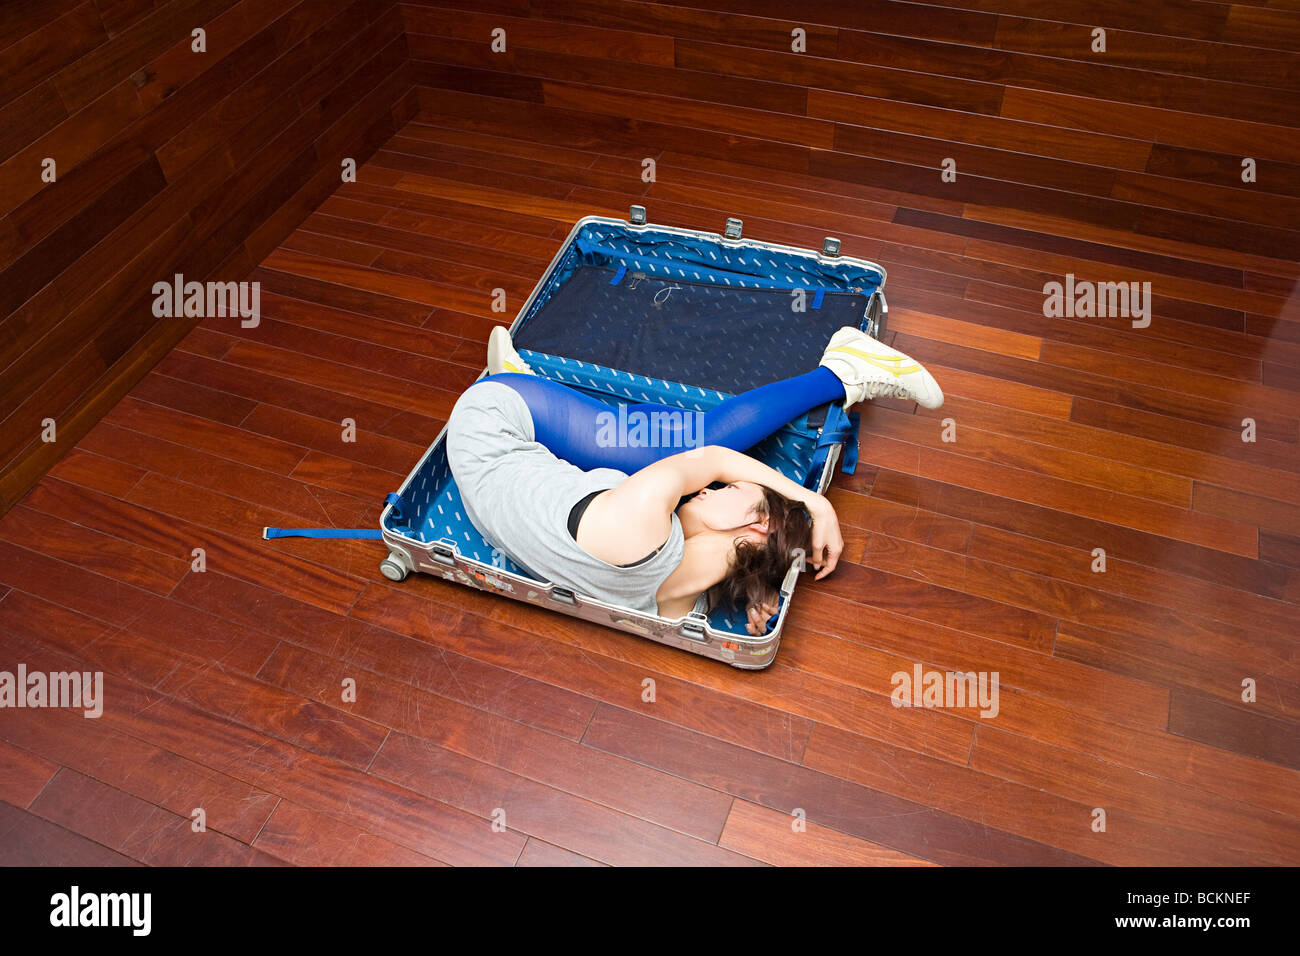 Young woman in a suitcase - Stock Image